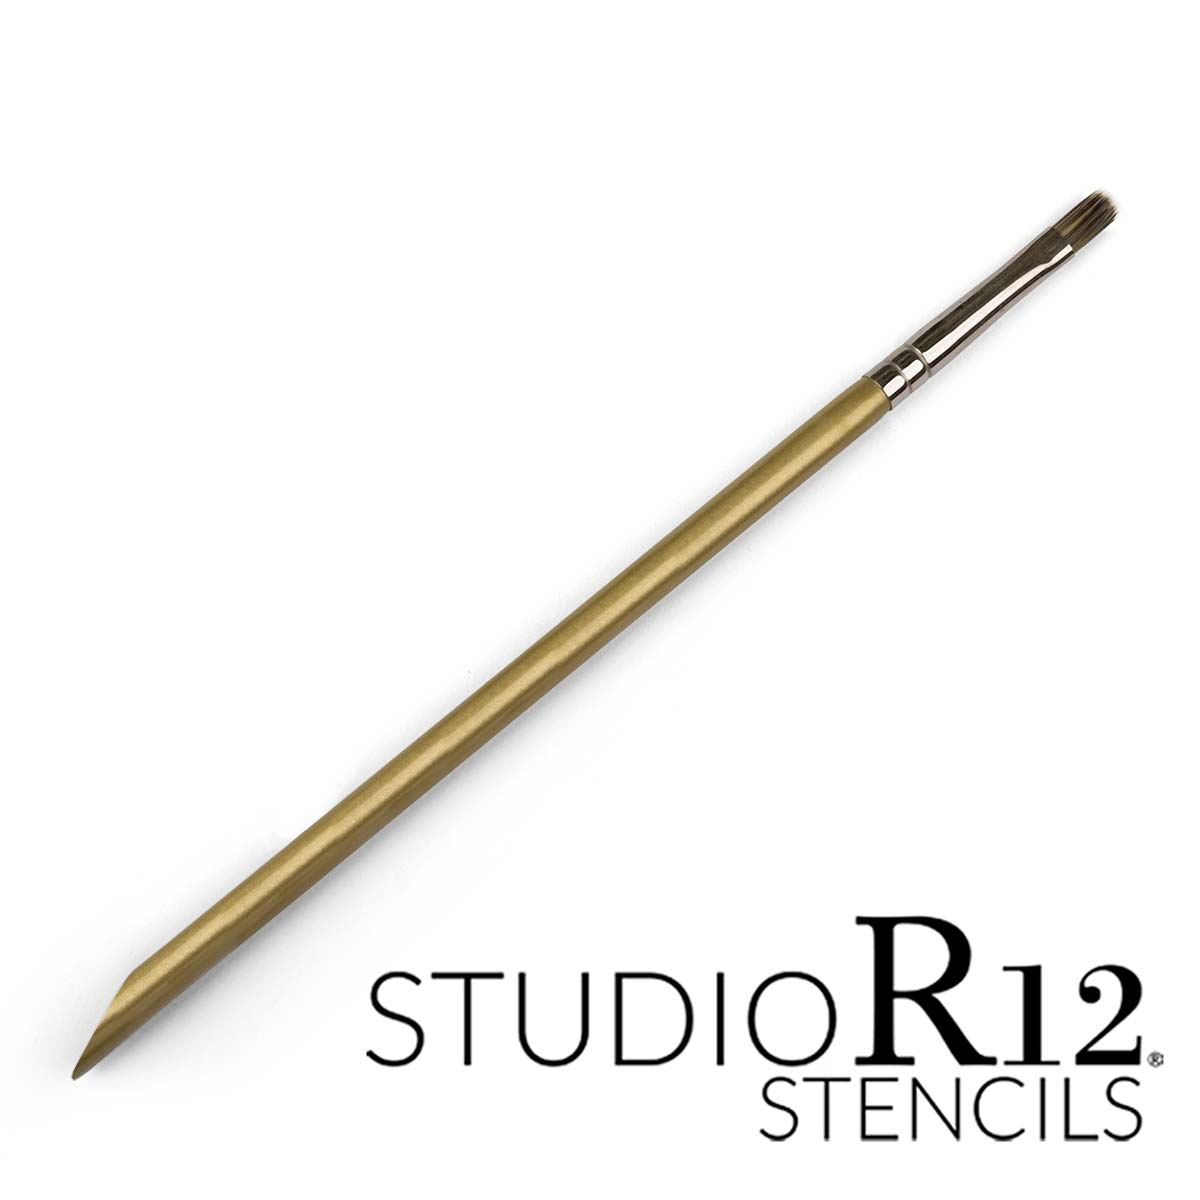 Workhorse Flat Brush by StudioR12 | Select Size